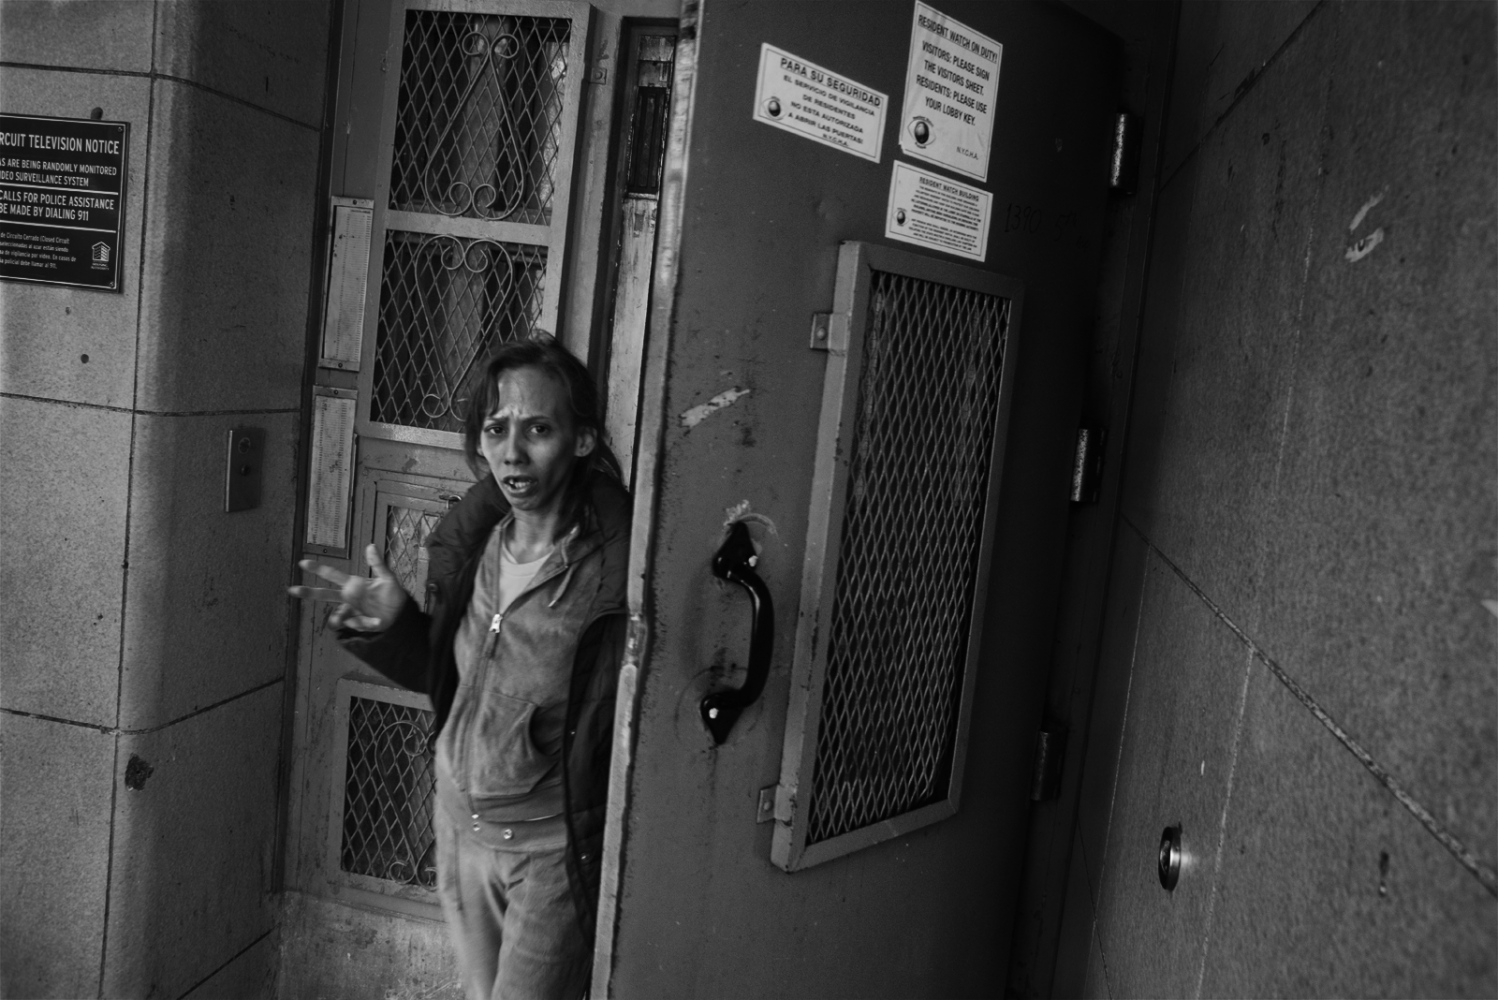 Yahaira De Jesus comes out of a housing project in her neighborhood in West Harlem where she was trying to buy a dose of crack cocaine one hour after being released from Rikers Island.  The first 24 hours after someone is released are crucial to their reintegration process and in many of the cases no reintegration services at all are provided for inmates with mental health issues. March 11th, 2016.